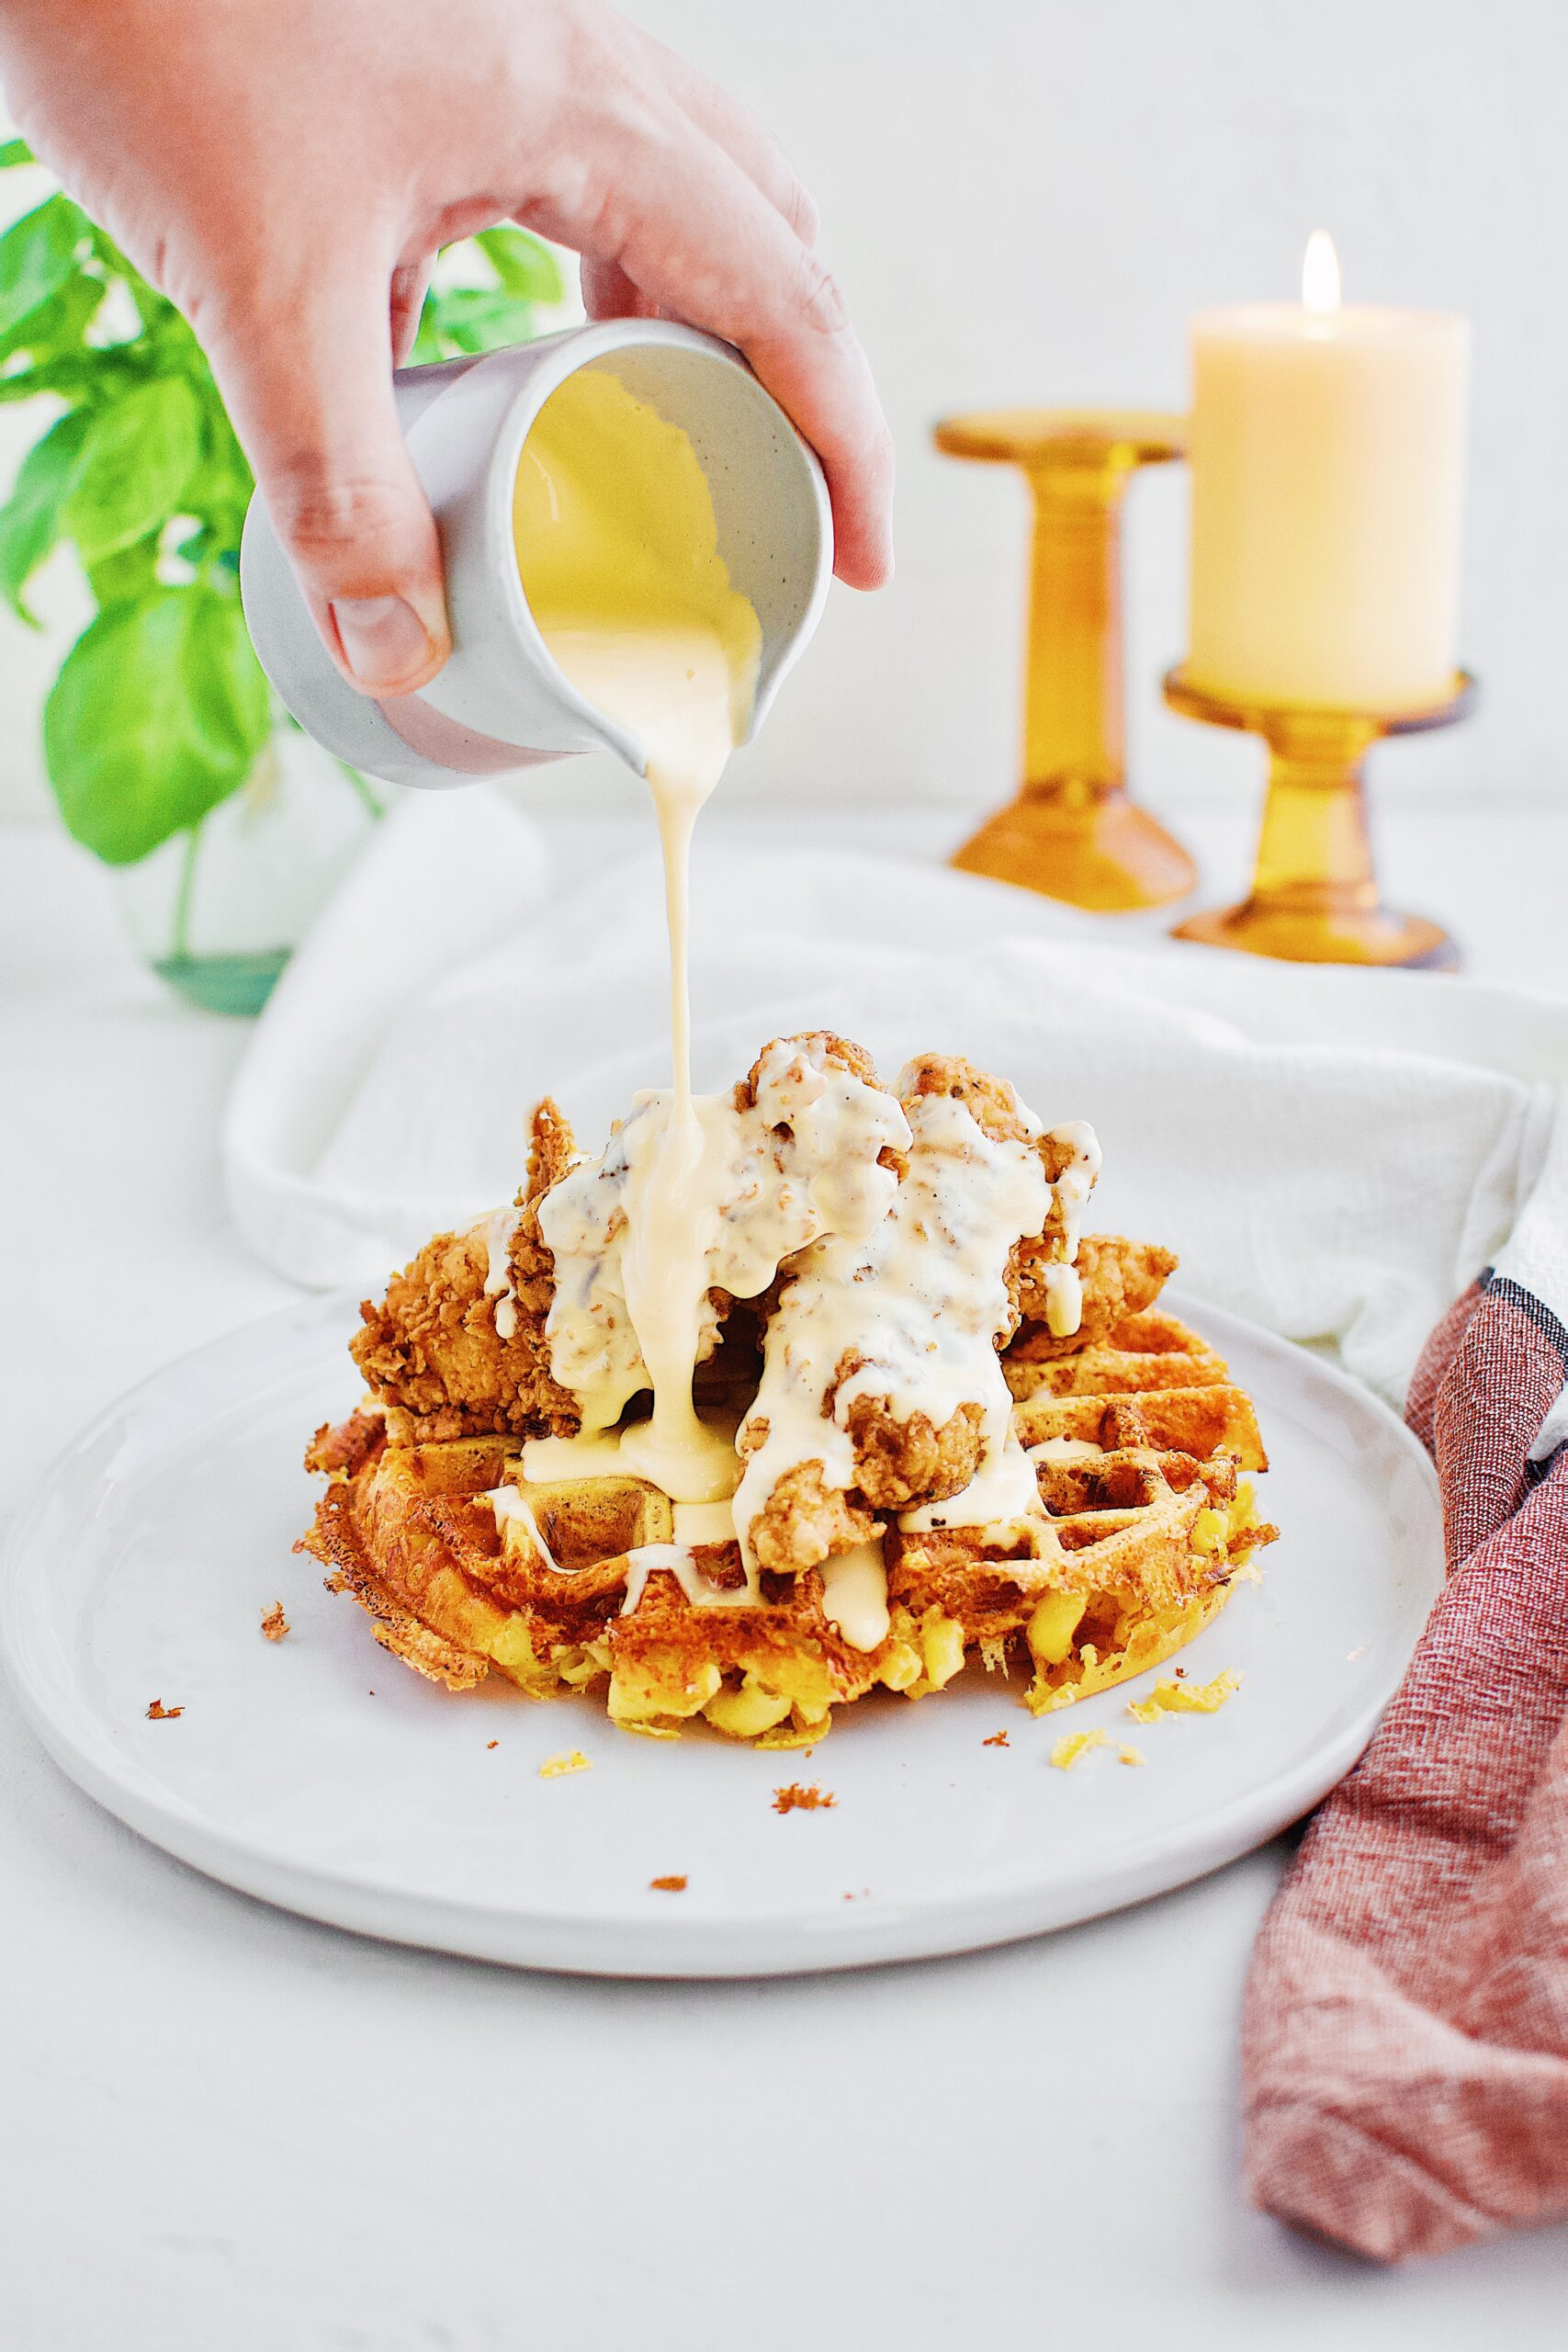 A hand pouring golden cheddar syrup over a stack of chicken mac n' cheese waffles on a white plate.